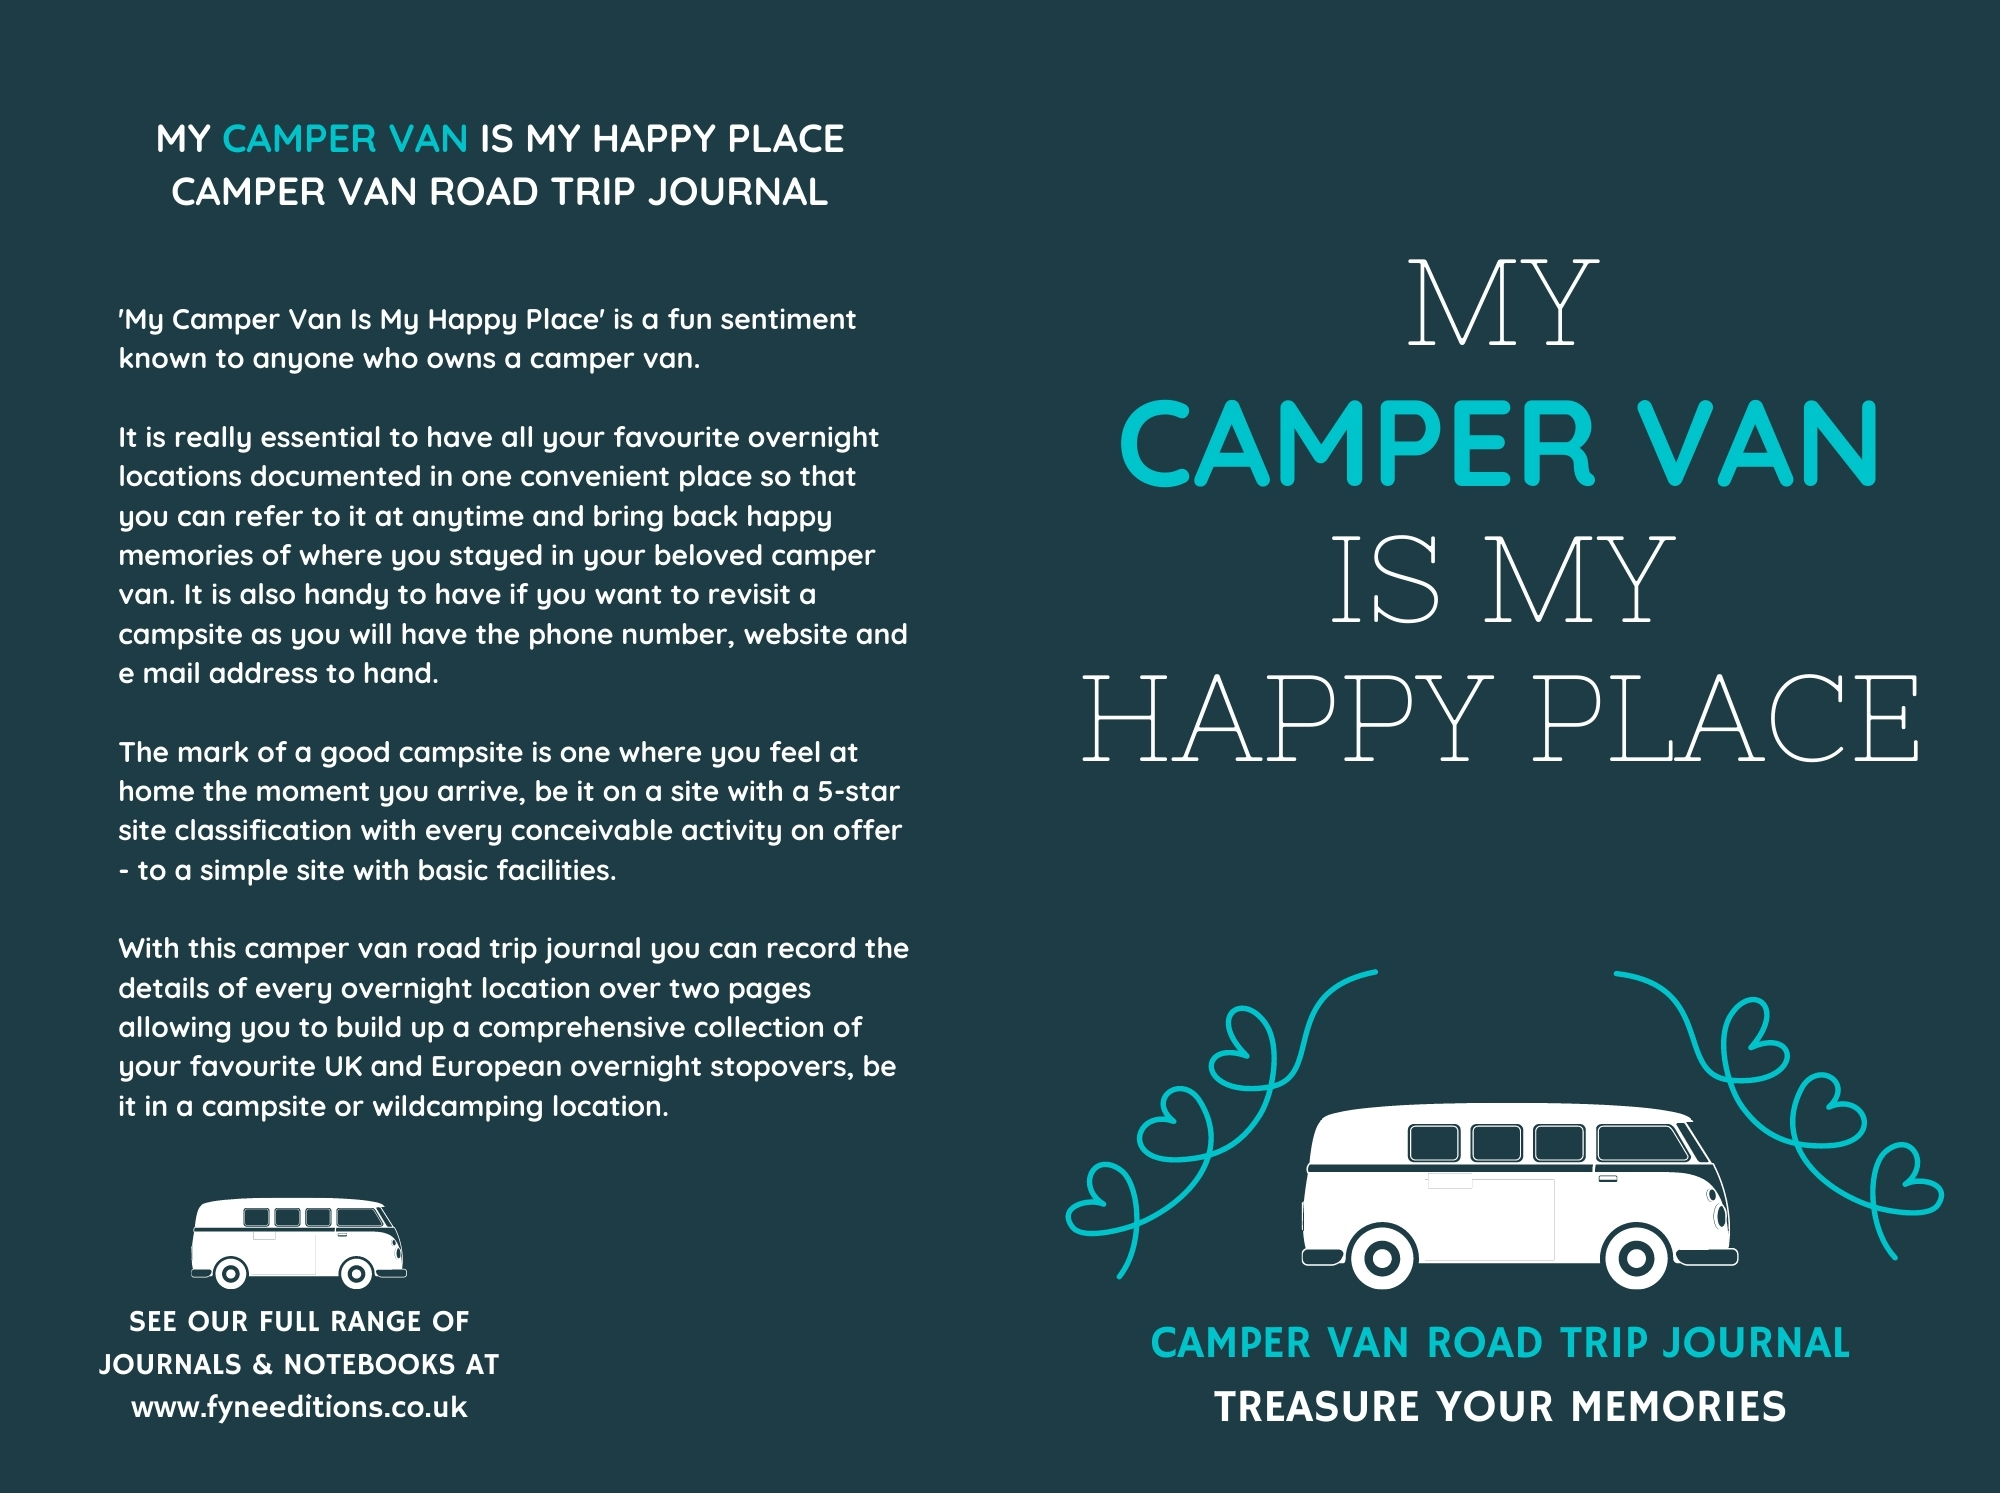 My Camper Van Is My Happy Place - Journal Cover